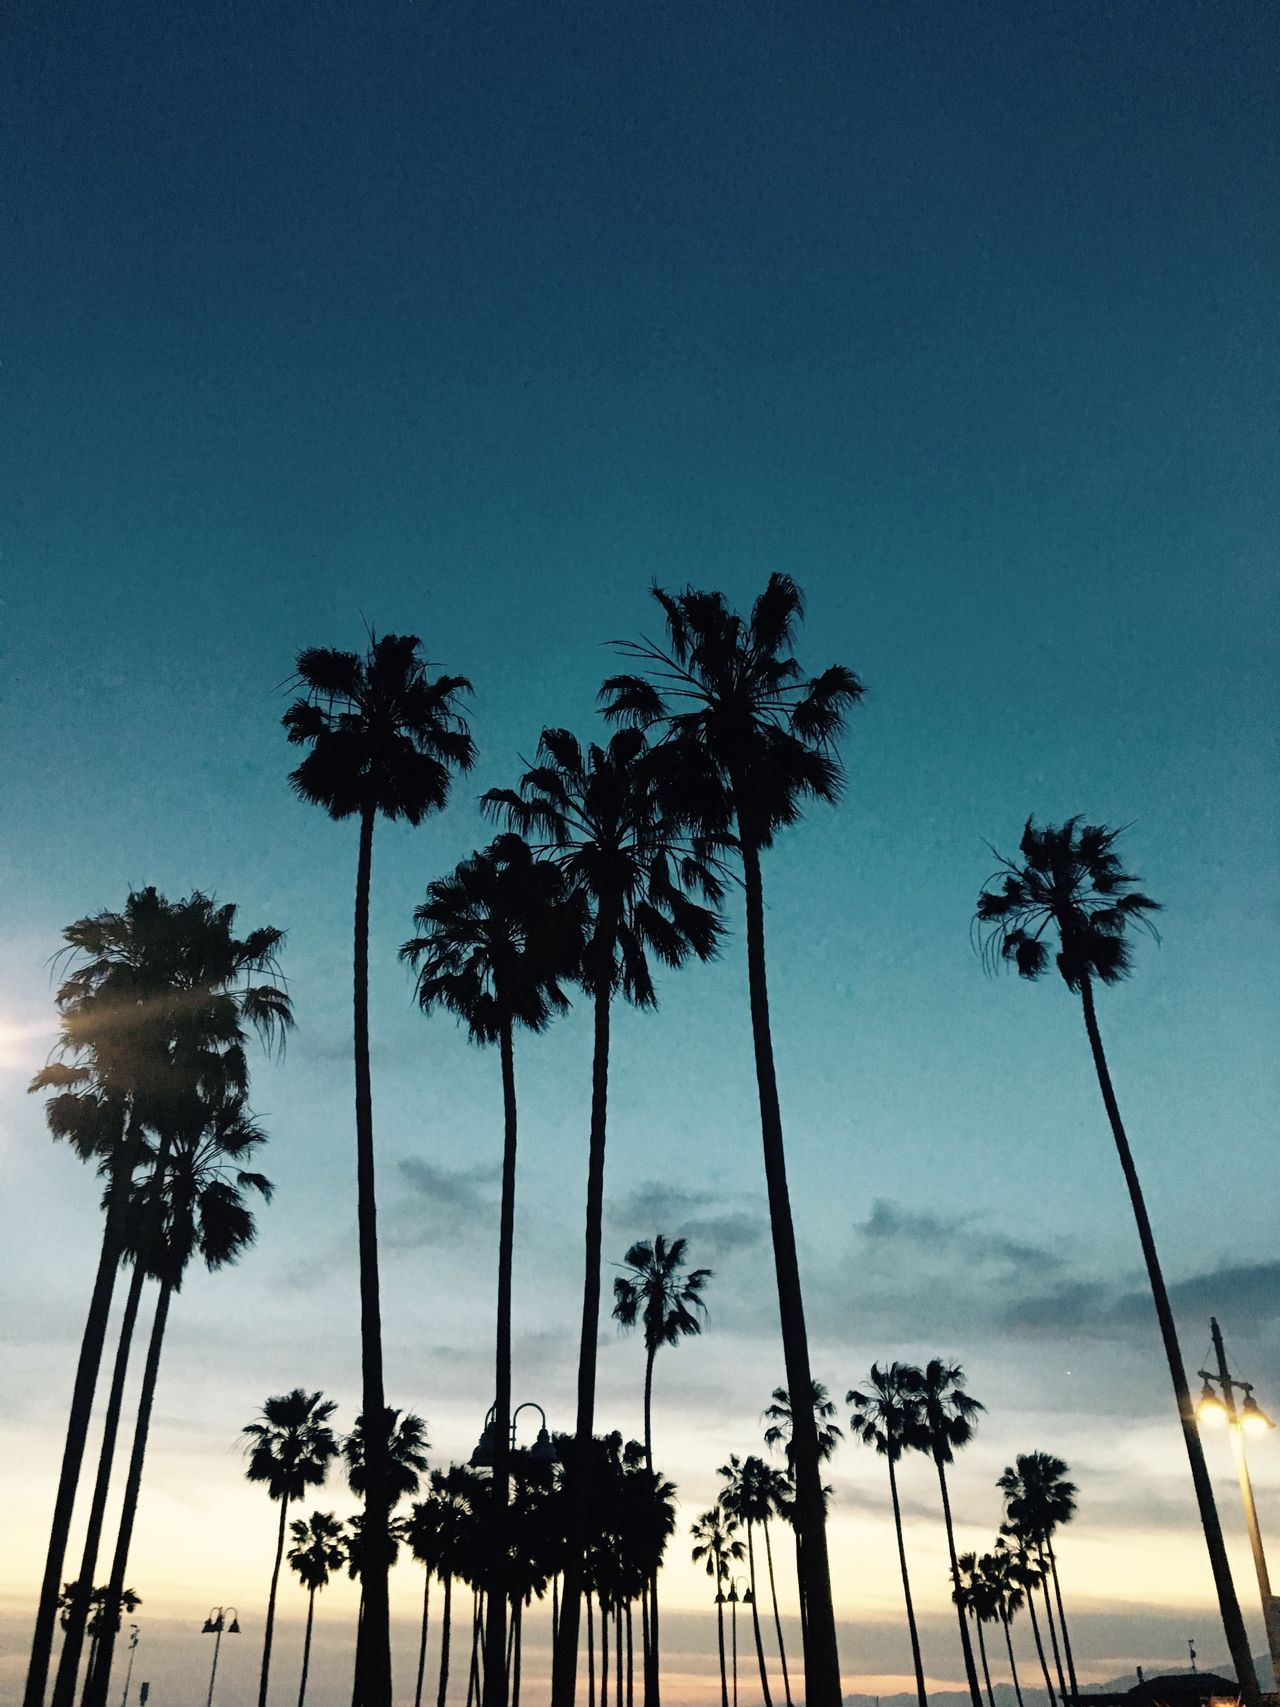 Beauty In Nature Blue California Clear Sky Day Growth Low Angle View Nature Night Night Sky No People Outdoors Palm Tree Palm Trees Scenics Silhouette Sky Sunset Tall Tree Tree Trunk Venice Beach Venice Beach Skatepark